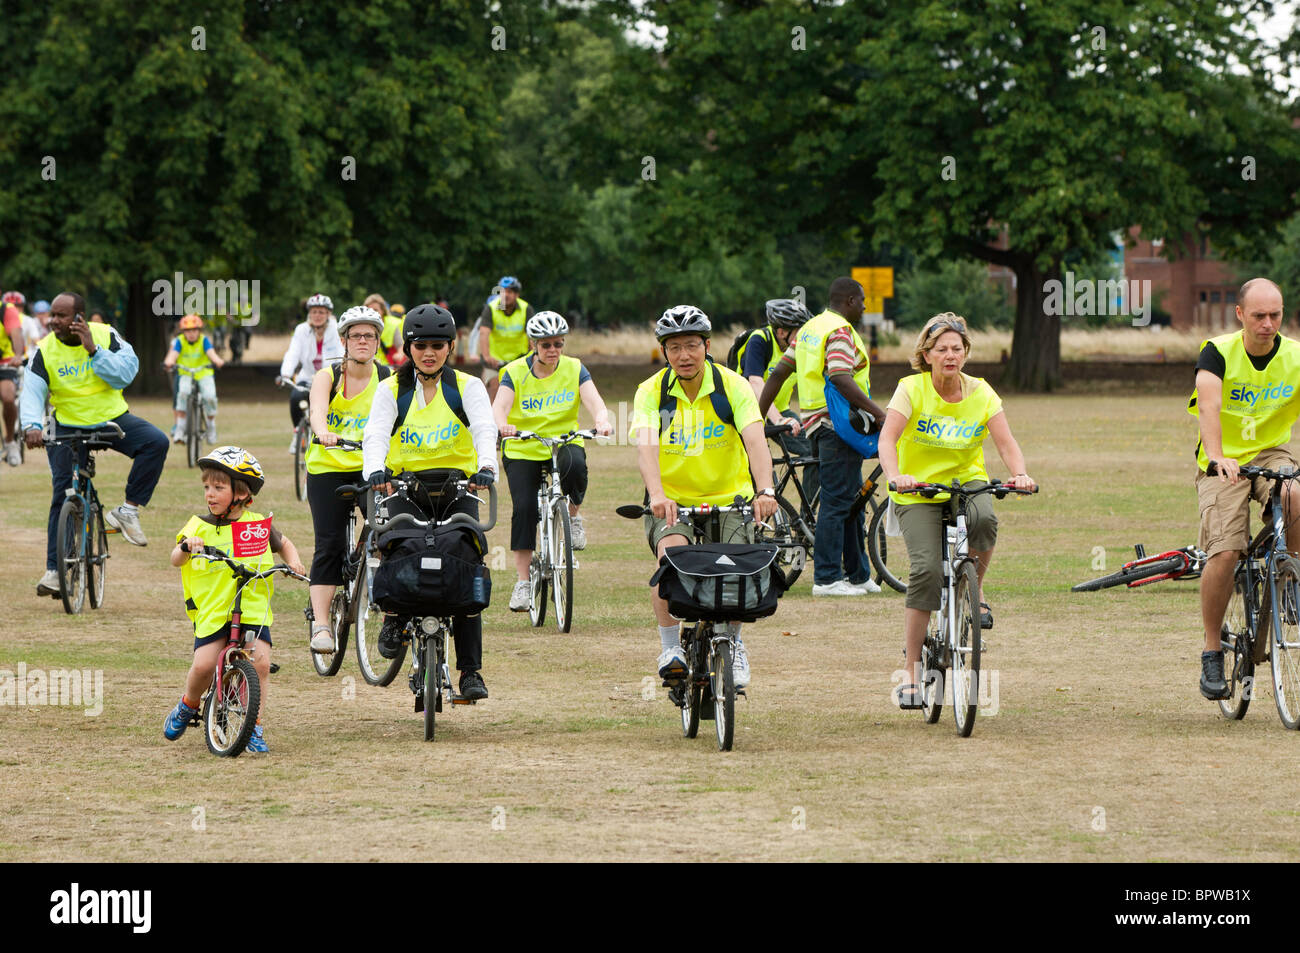 People cycle across Ealing Common during Mayor of London's Sky Ride Ealing 2010 event, United Kingdom - Stock Image